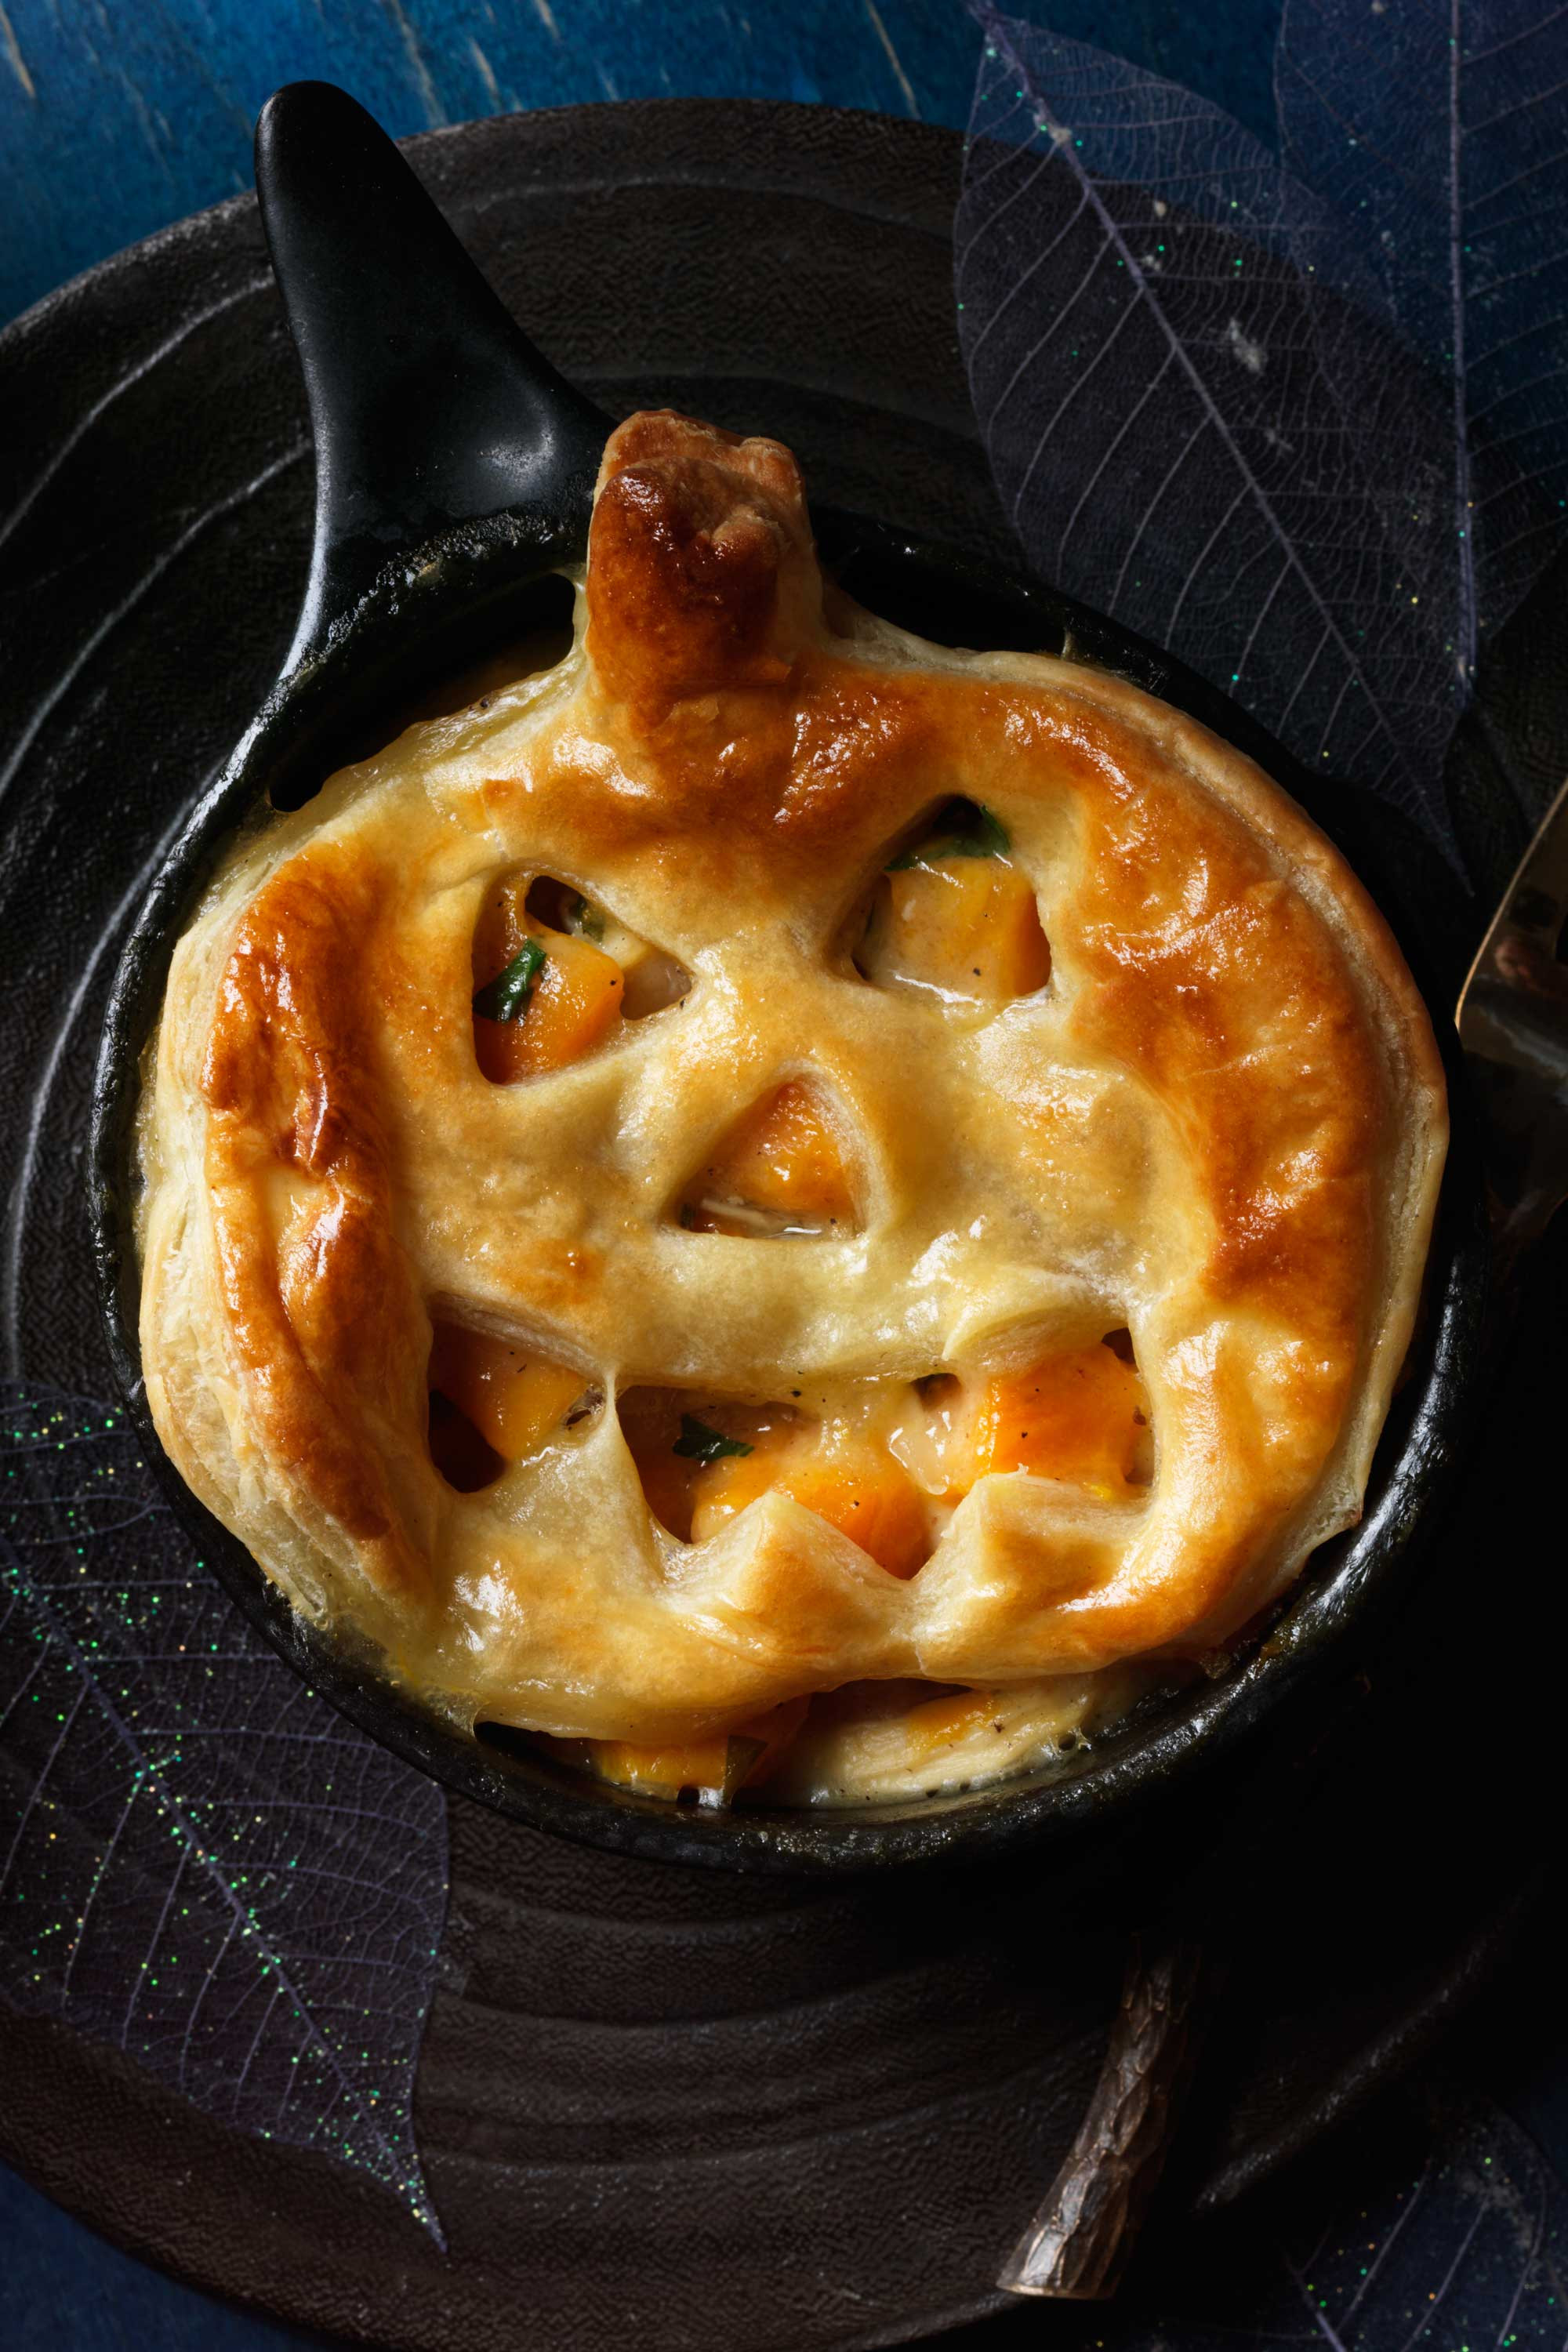 Spooky Halloween Dinners  20 Spooky Halloween Dinner Ideas Best Recipes for